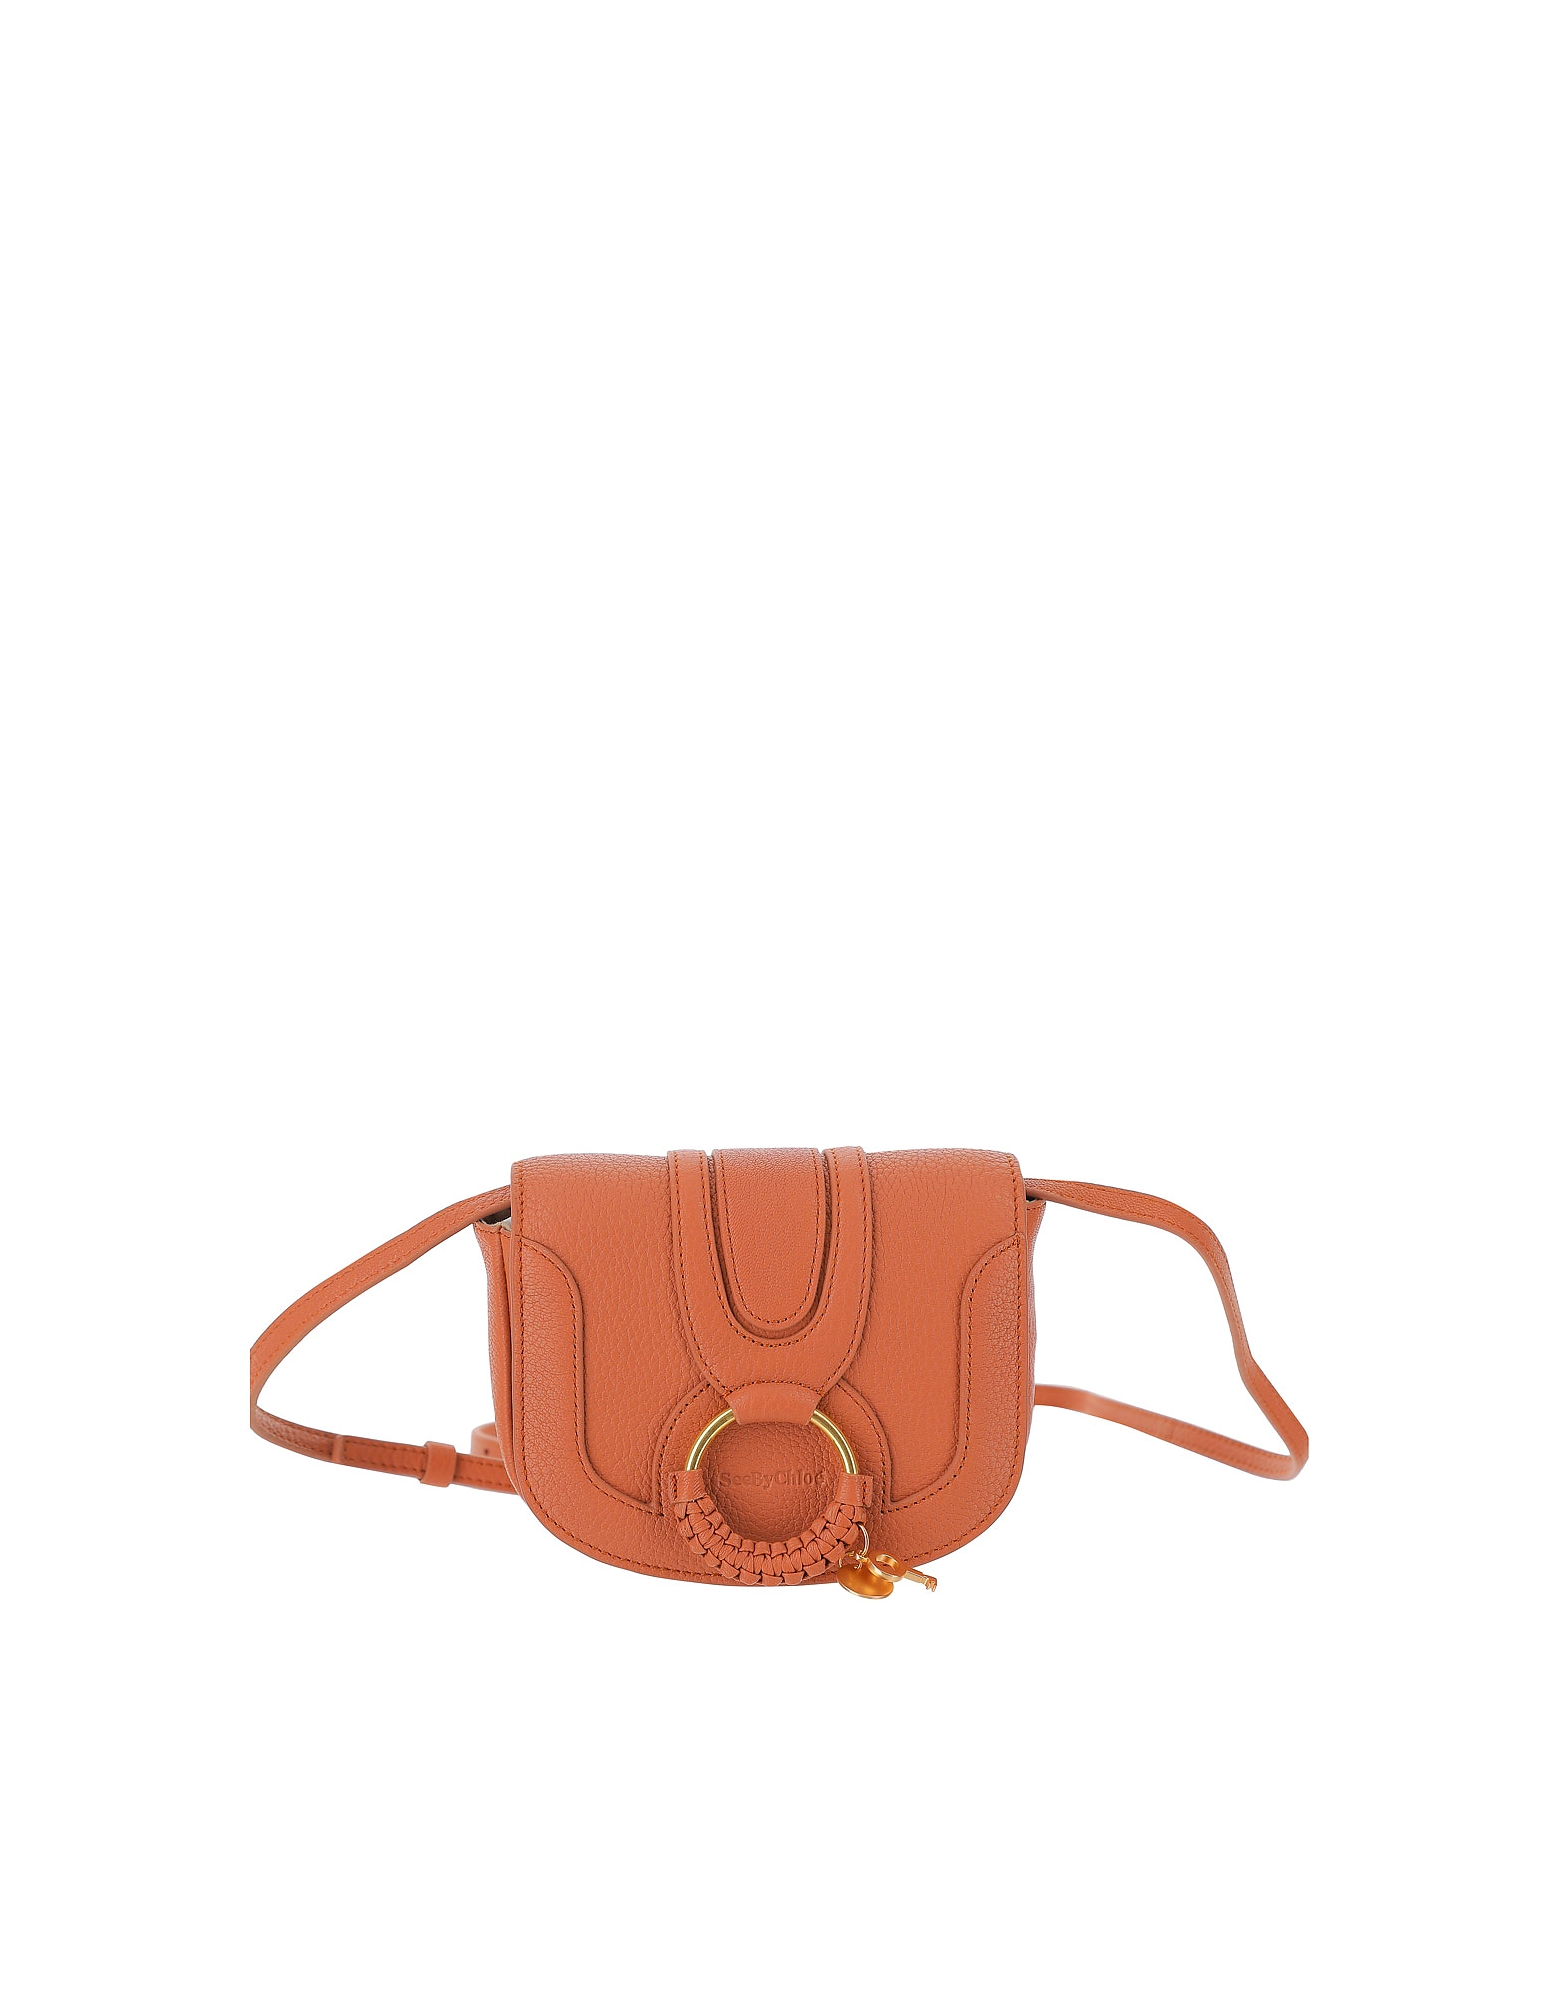 See by Chloé Designer Handbags, Rust Leather Hana Shoulder Bag